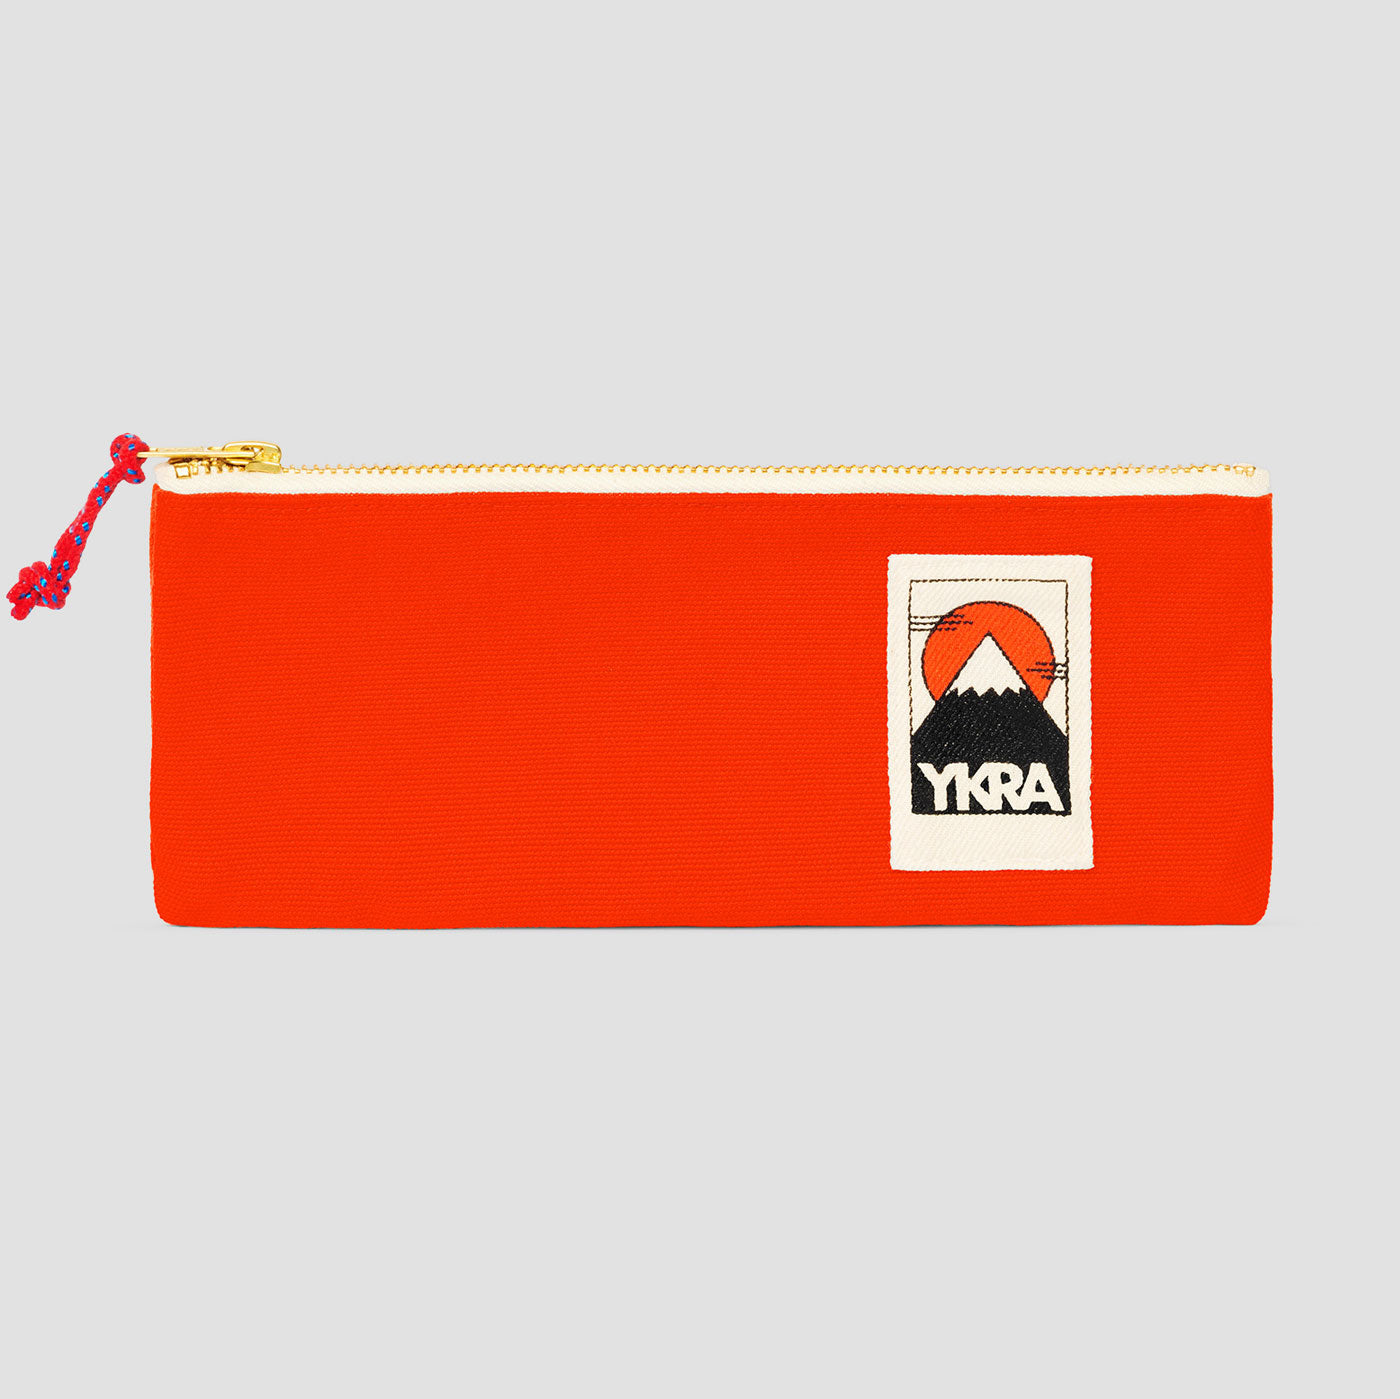 YKRA PENCIL CASE - ORANGE